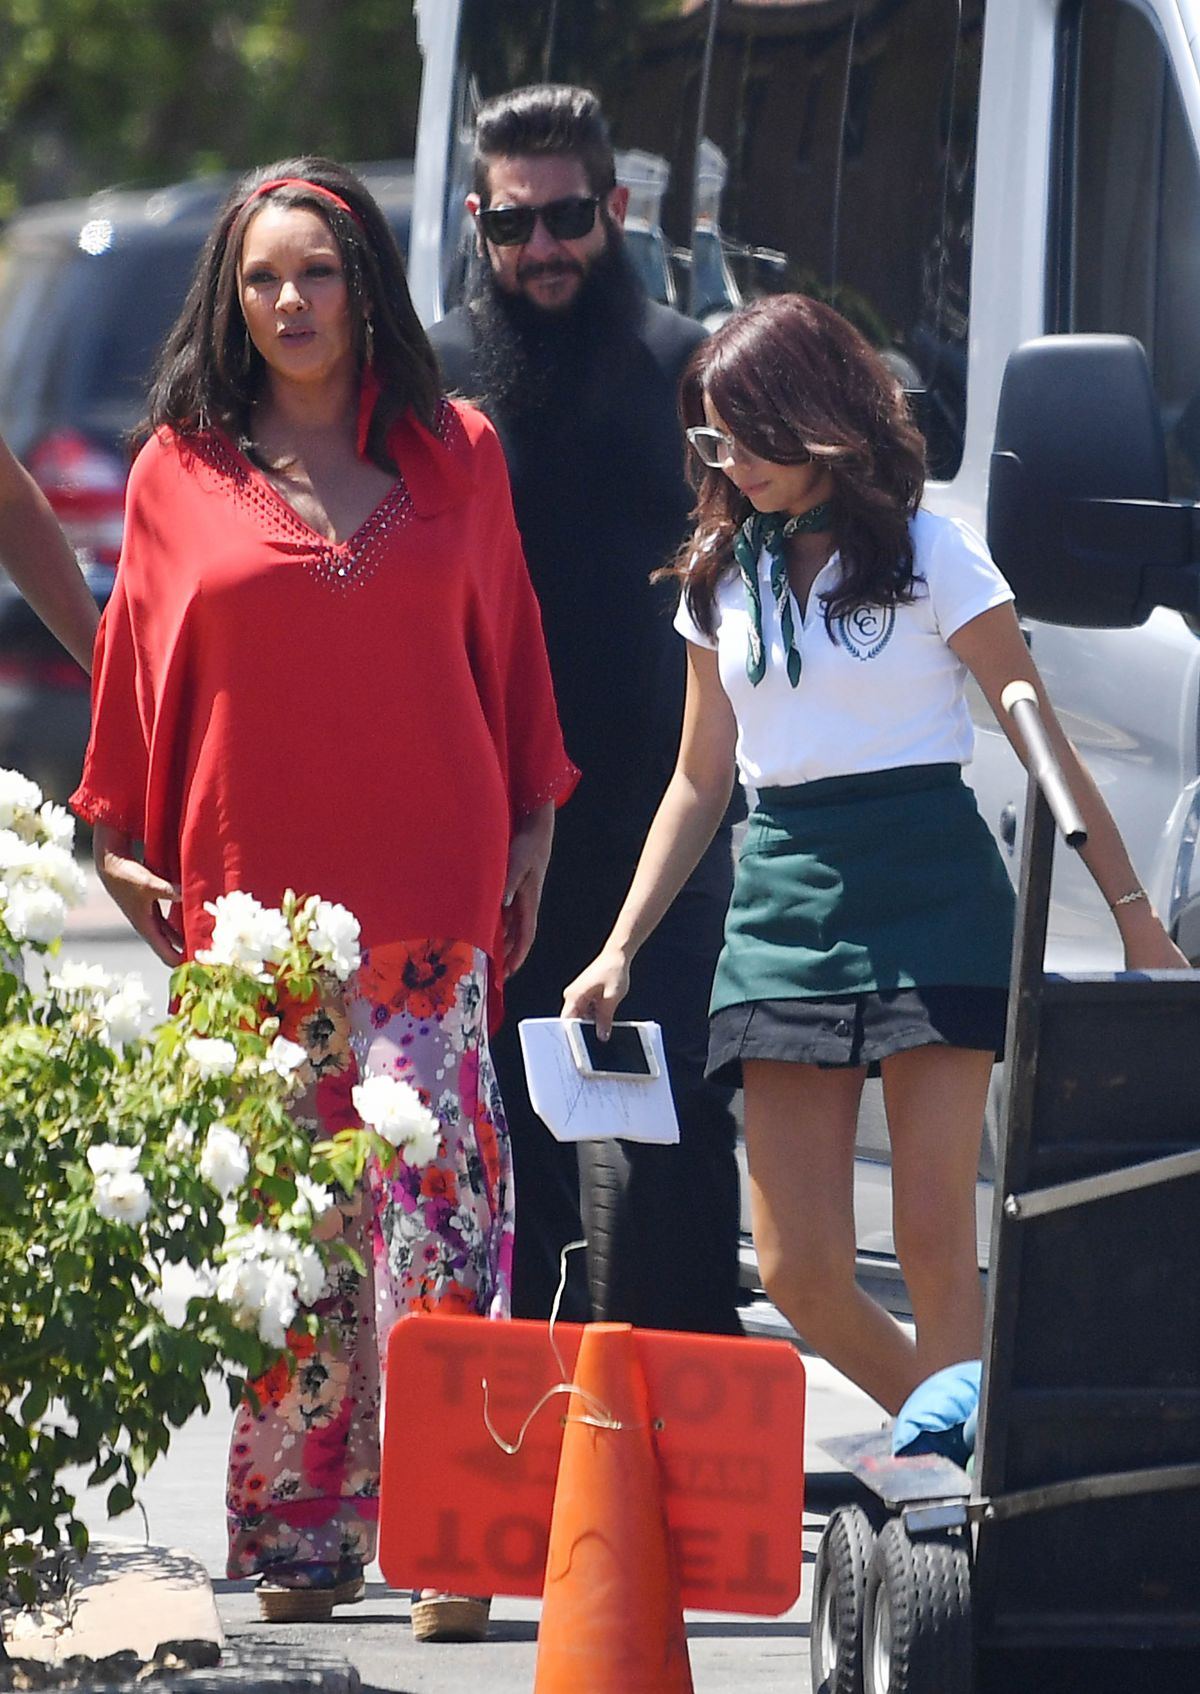 VANESSA WILLIAMS and SARAH HYLAND Arrives on the Set of Modern Family in Los Angeles 08/15/2017